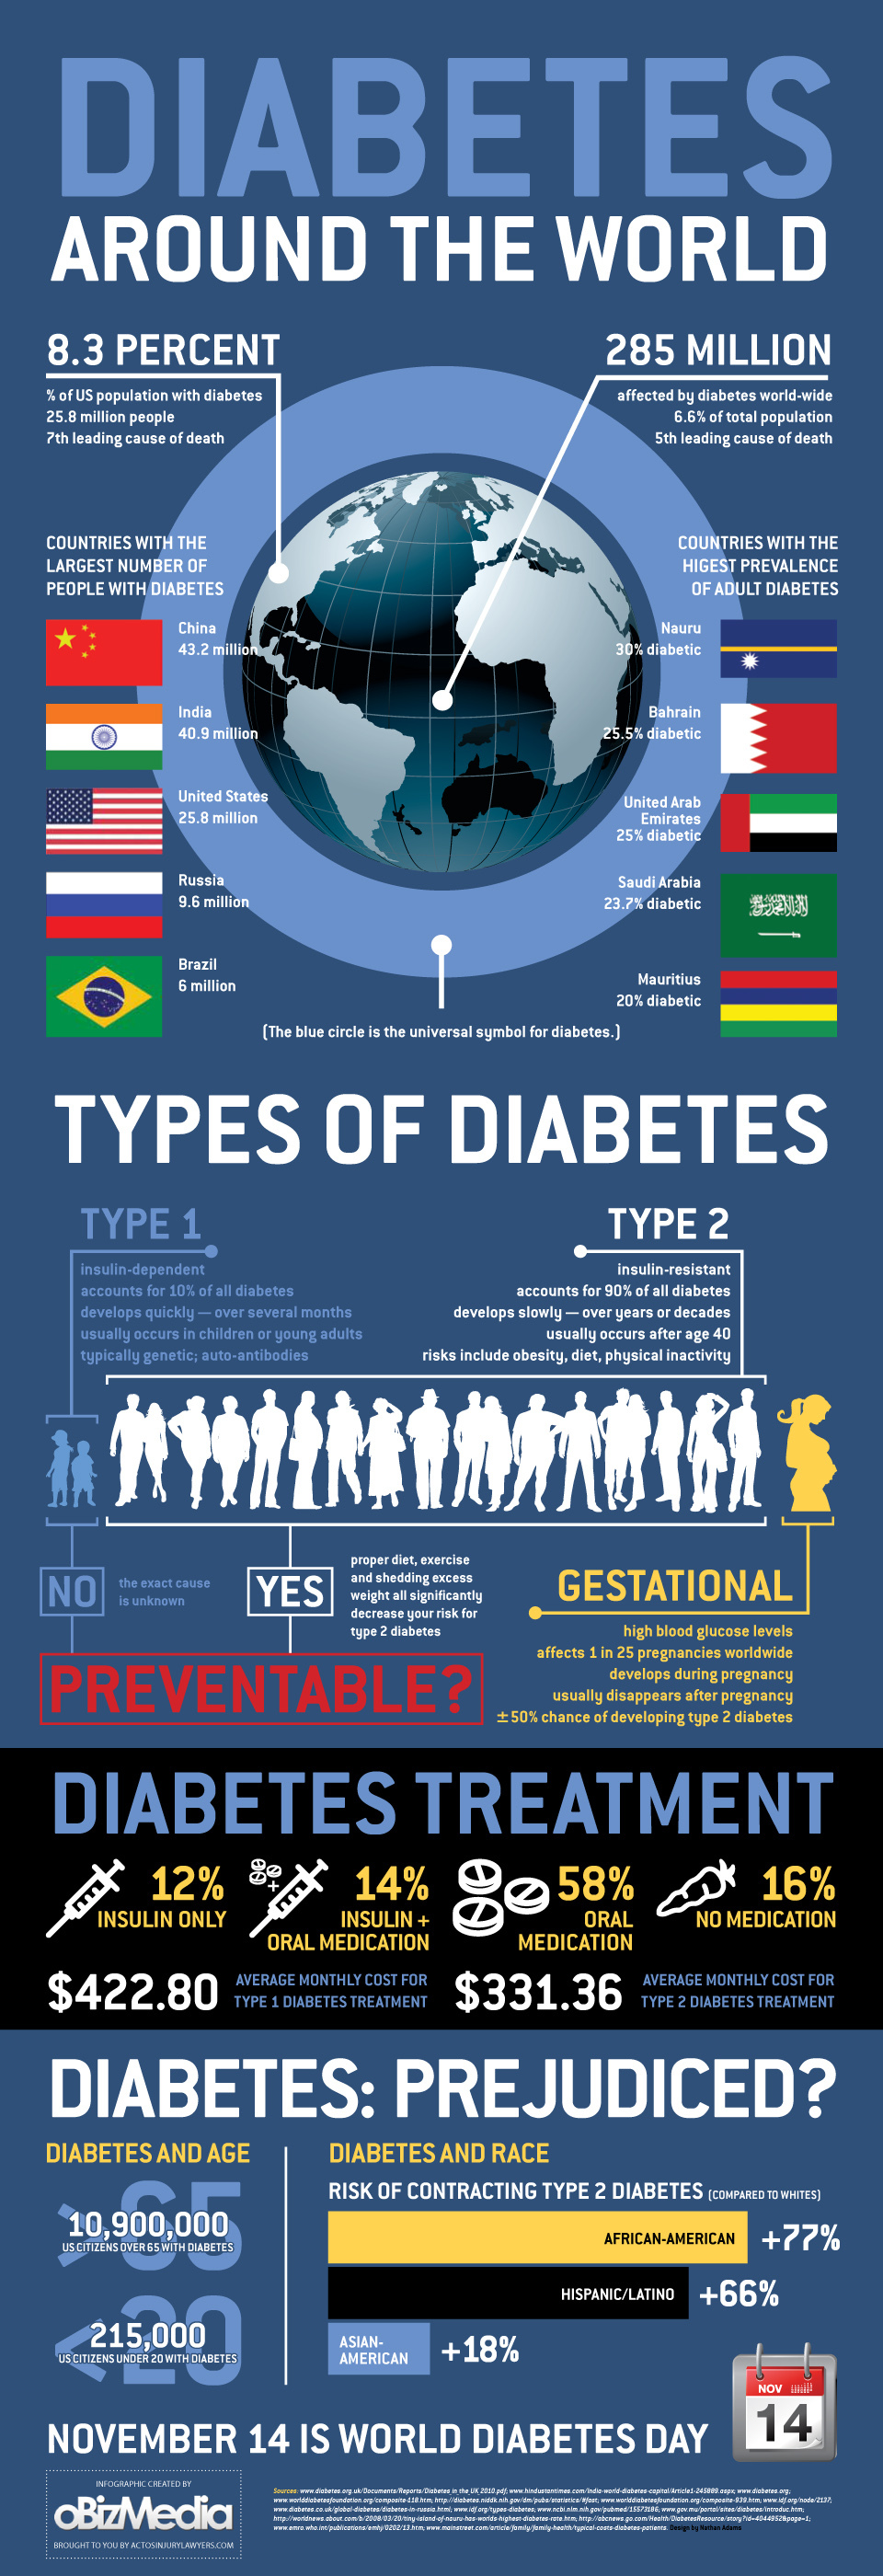 Diabetes Outside Your Country - Infographic